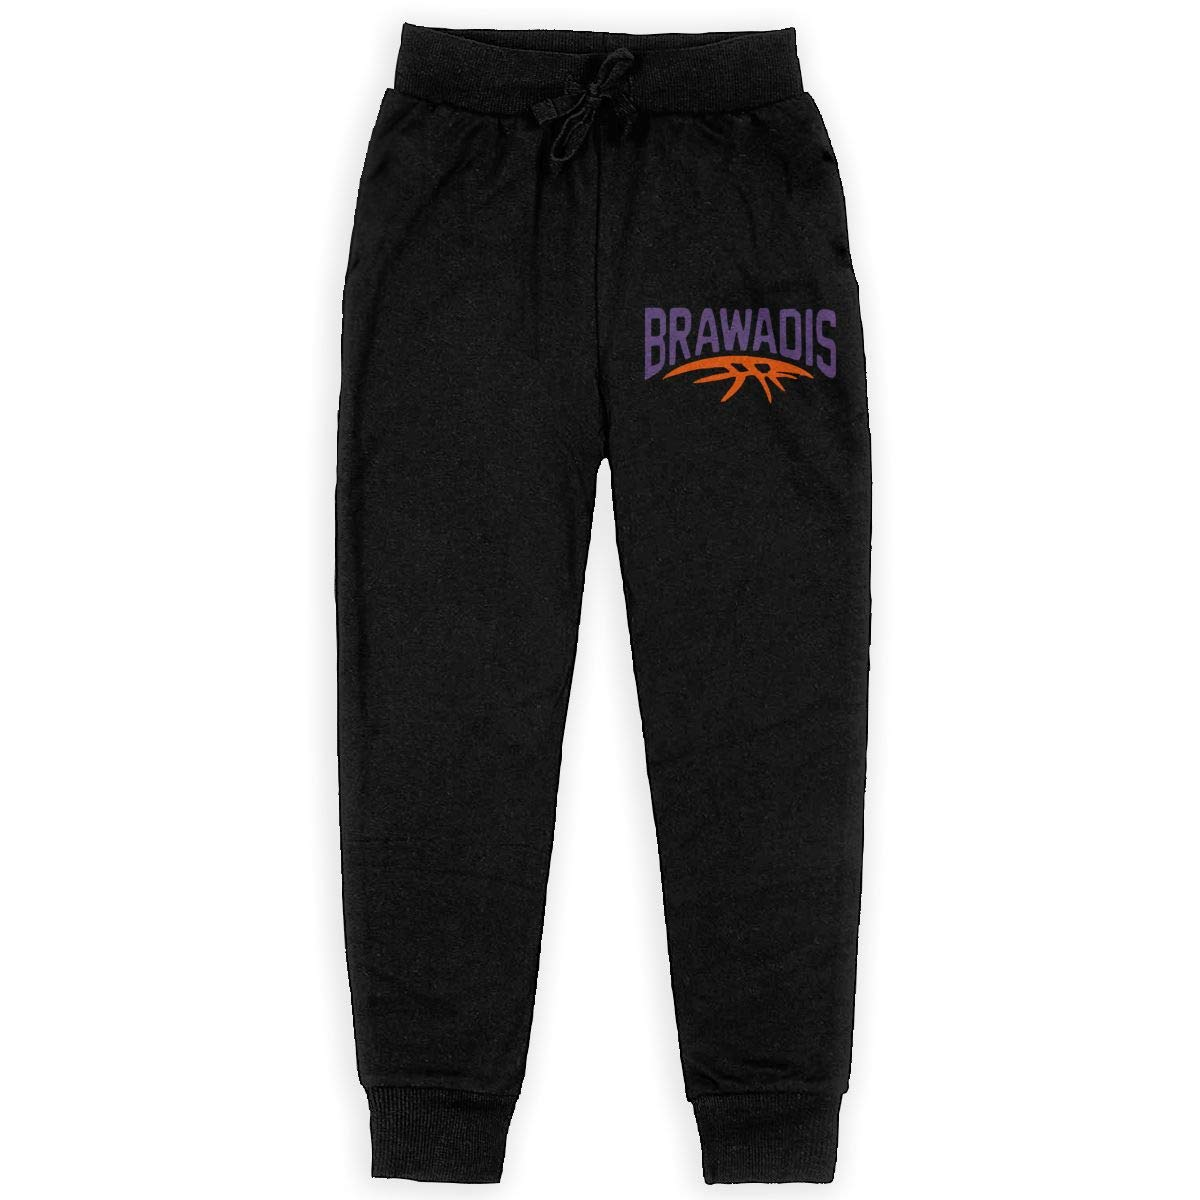 LETE Big Boys Girls Sport Jogger Pants Stretch Active Basic Sweatpants Broad City